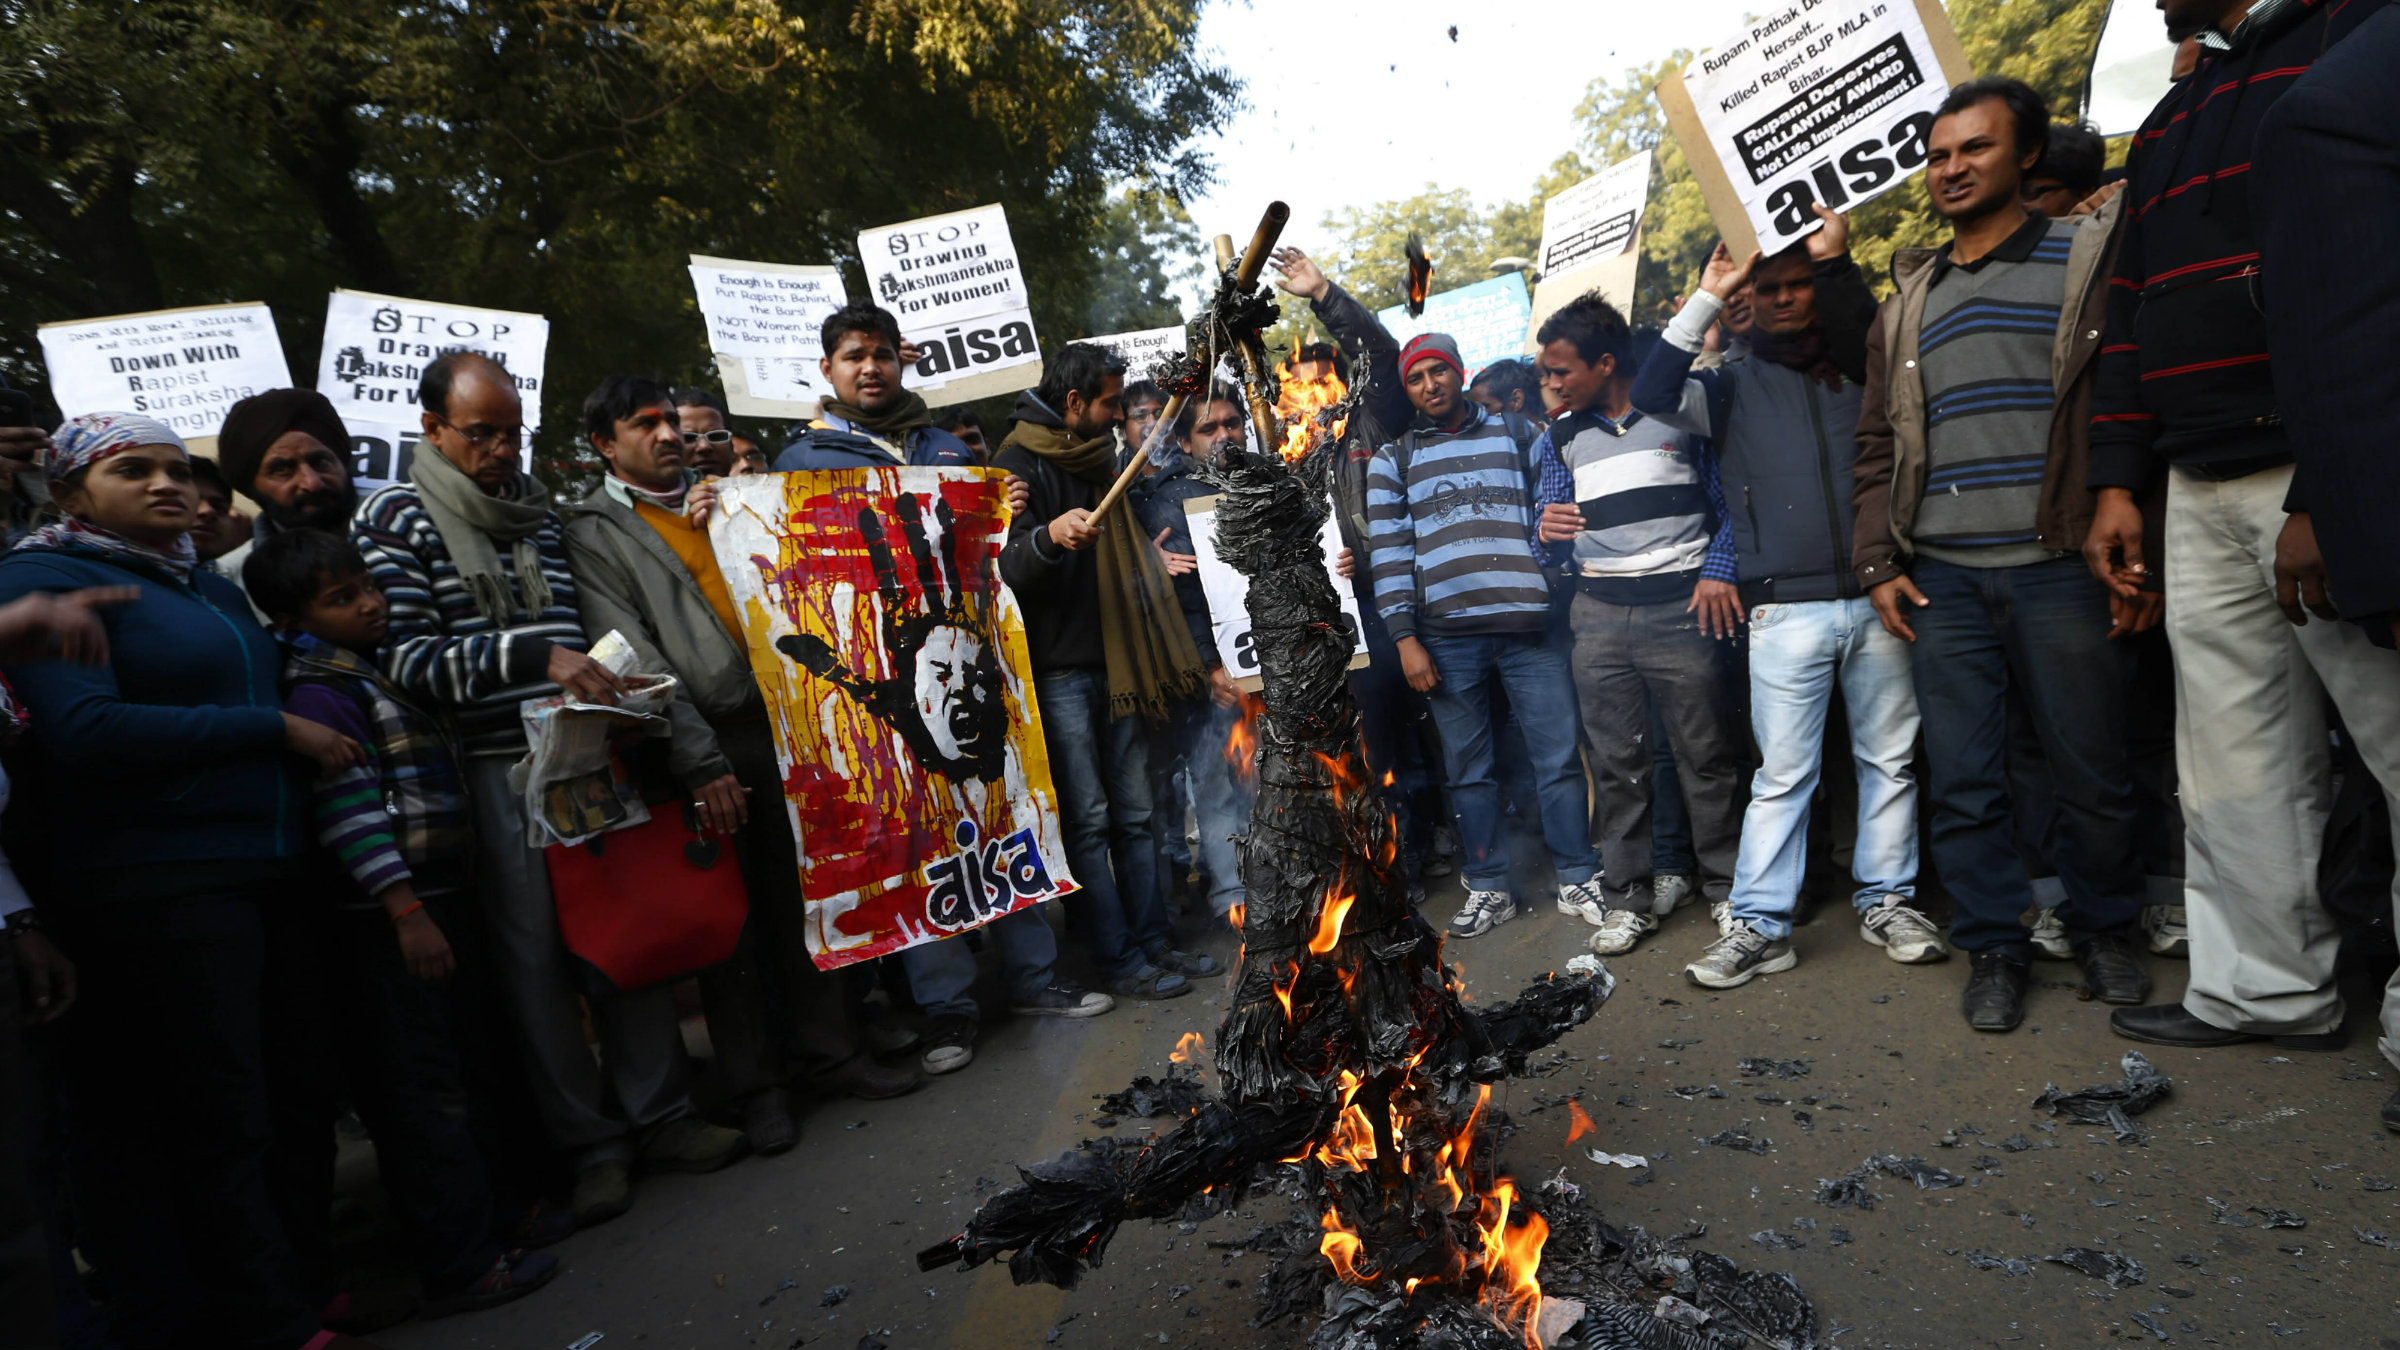 Foot in mouth: Indian students burn an effigy representing Hindu nationalist leaders Asaram Bapu and Mohan Bhagwat. This week, Bapu said the victim of the Delhi gang rape was equally responsible for the attack as her assailants. Bhagwat also made several derogatory statements against women.